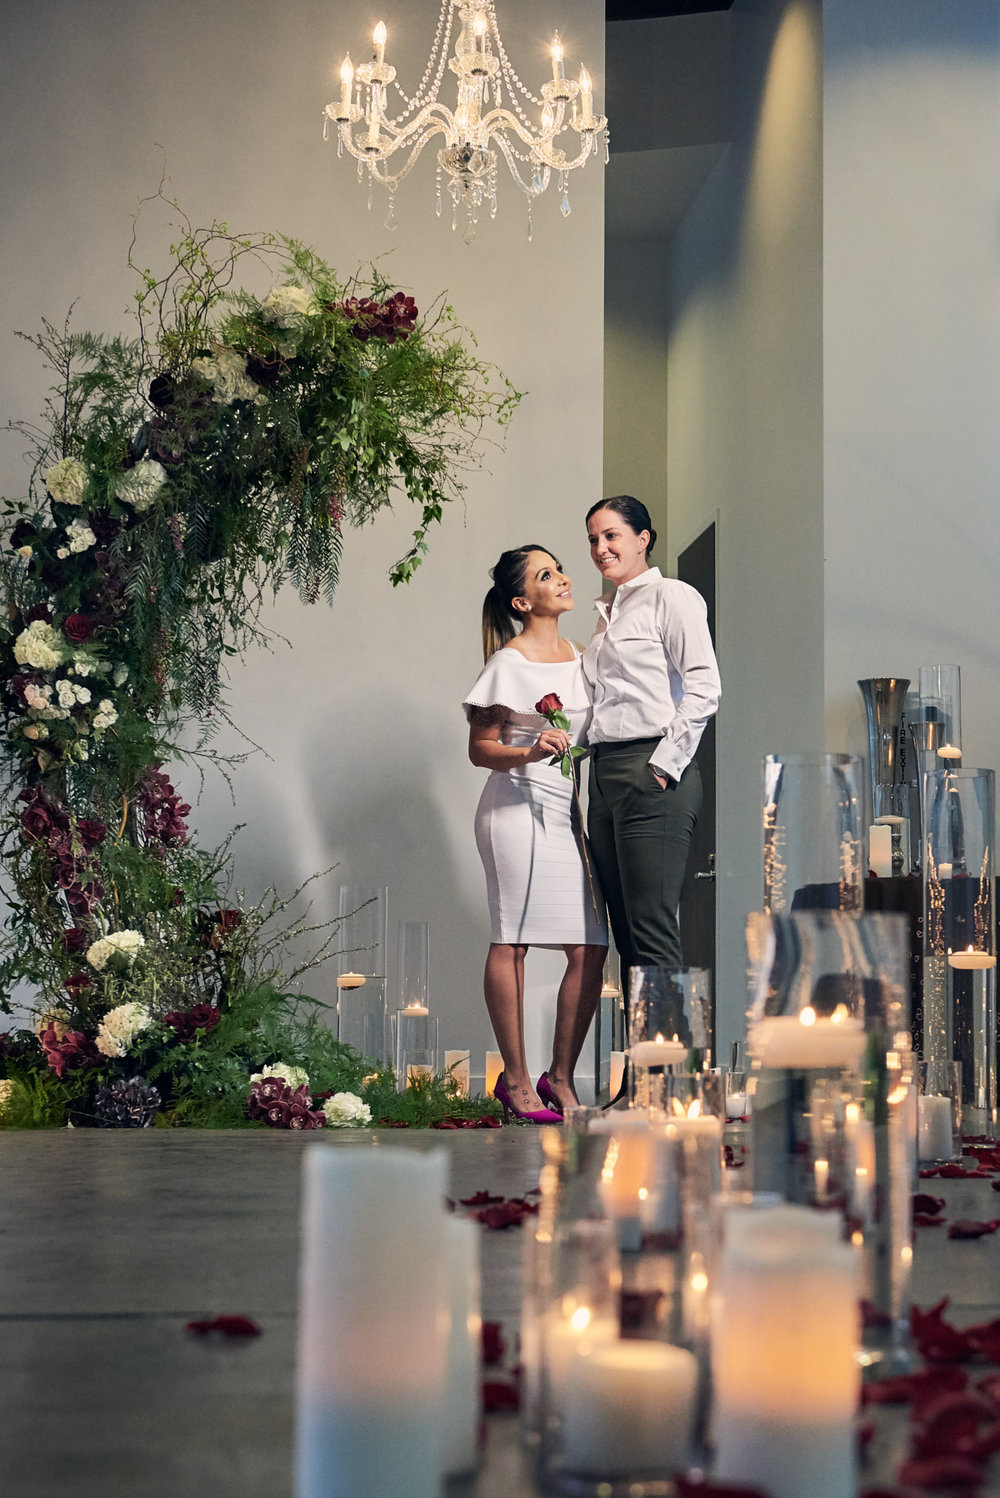 Two brides to be getting engaged under a chandelier.  Las Vegas Wedding Planner Andrea Eppolito designed the surprise engagement at the Mandarin Oriental for two brides to be.  Decor and lighting by Flora Couture and LED Unplugged, with photos by Fabio and Adri.